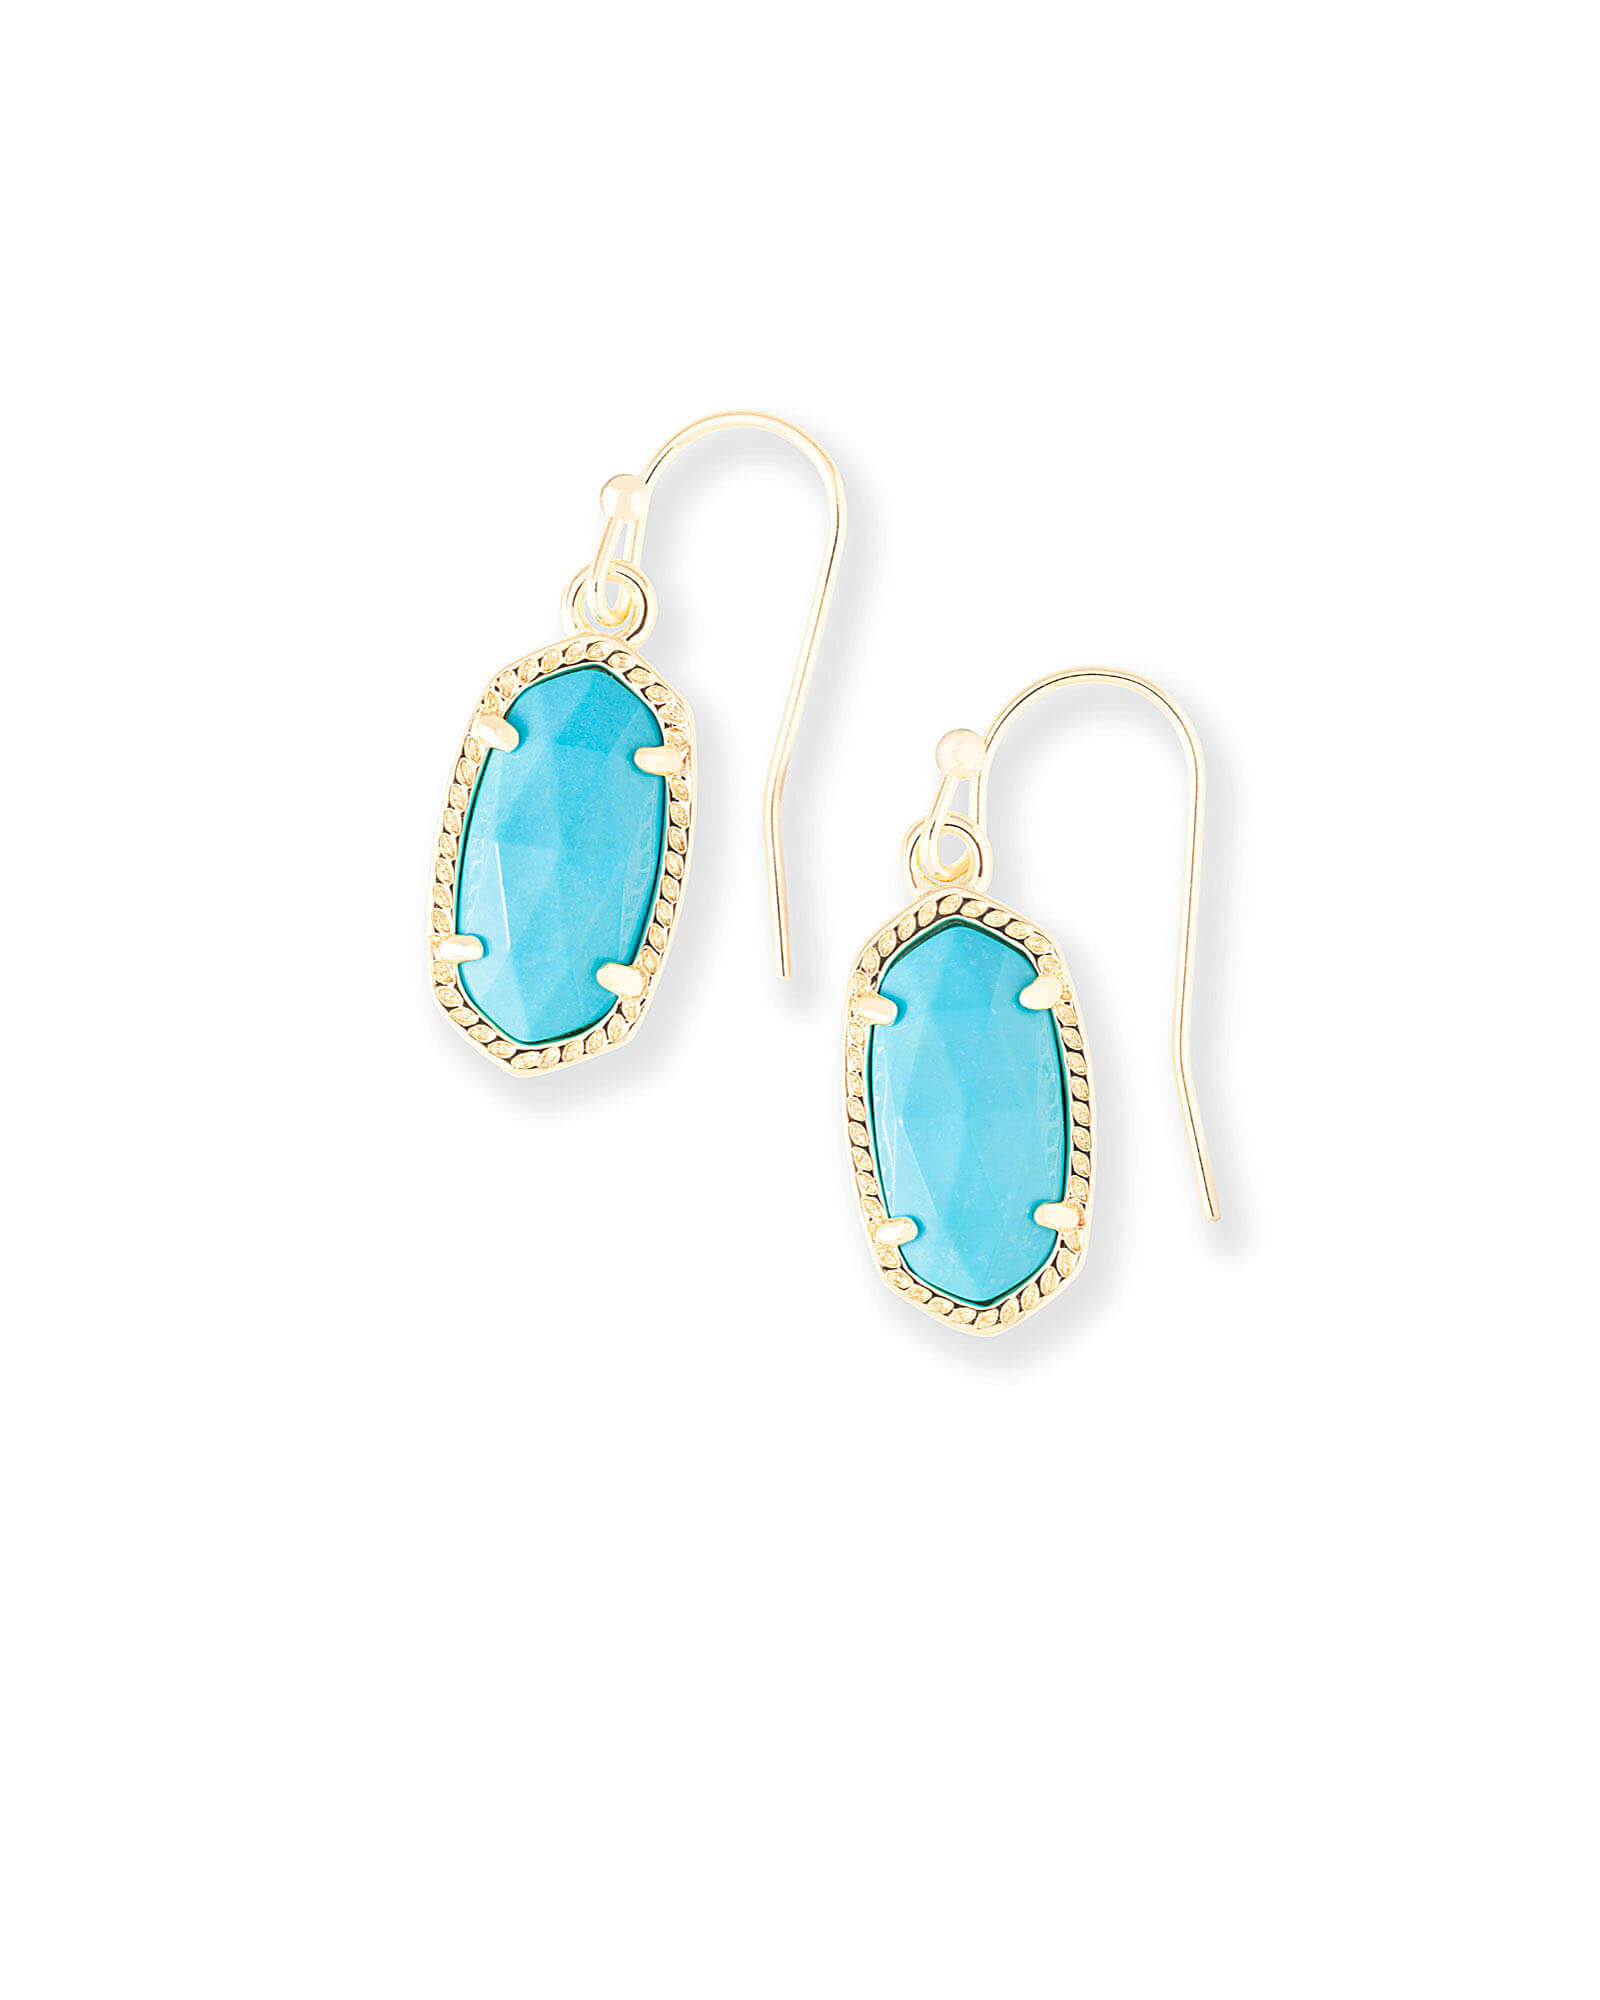 Lee Gold Drop Earrings in Turquoise